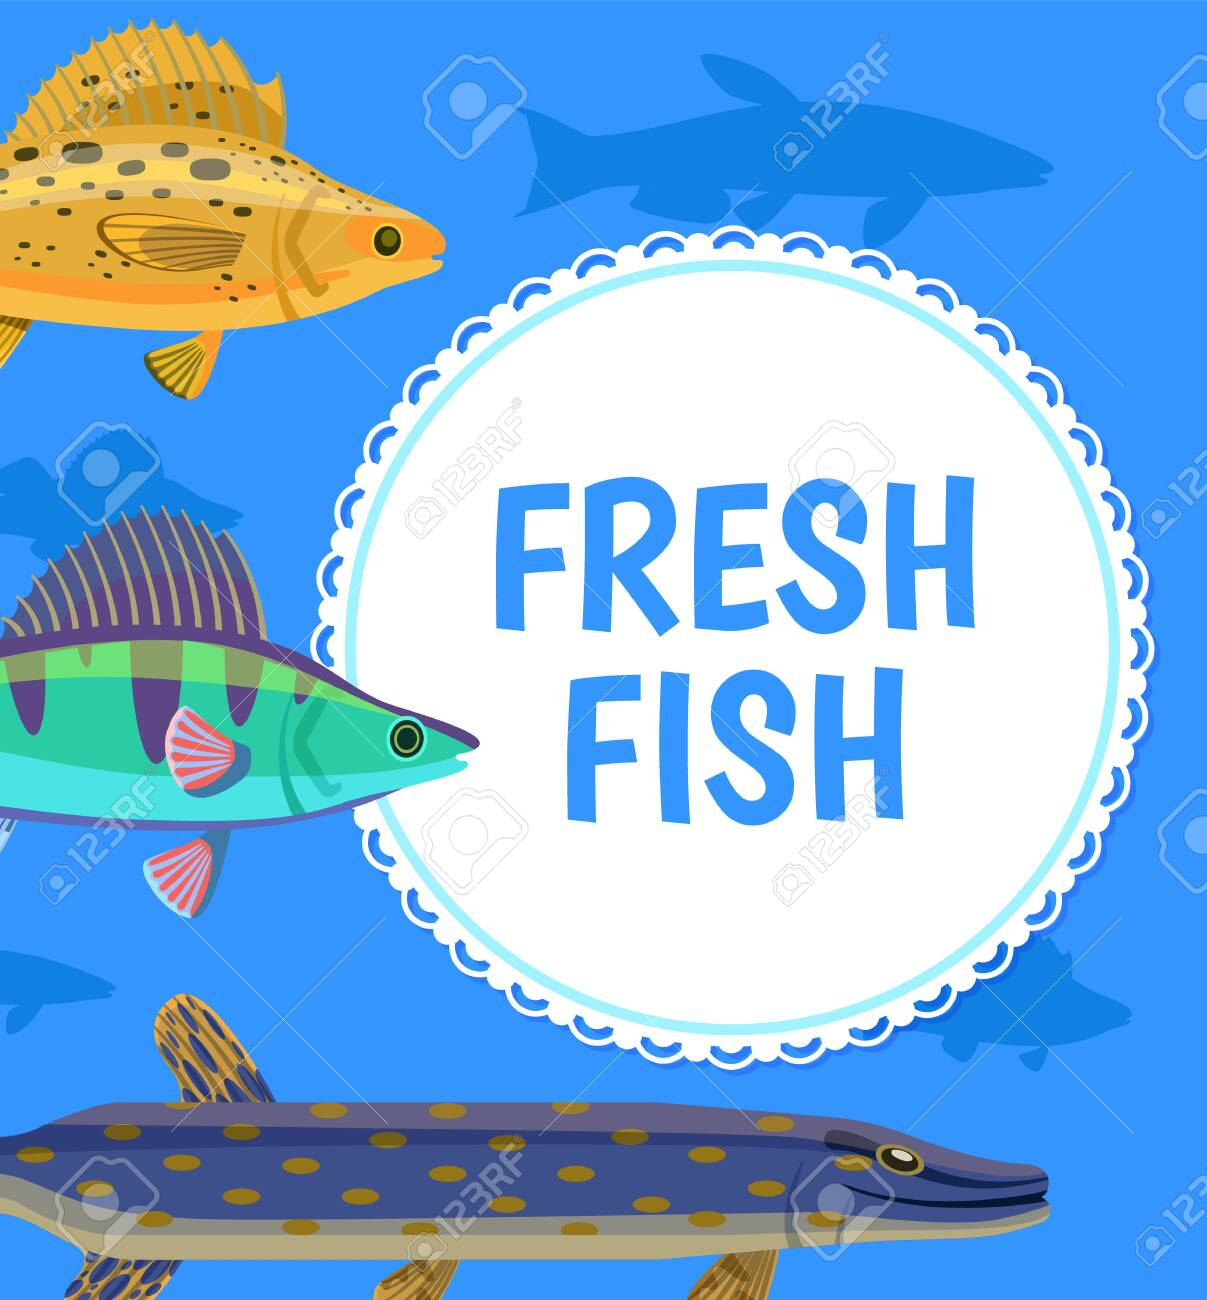 Fresh Fish Postcard With White Round And Cartoon Fishes Side Royalty Free Cliparts Vectors And Stock Illustration Image 123798840